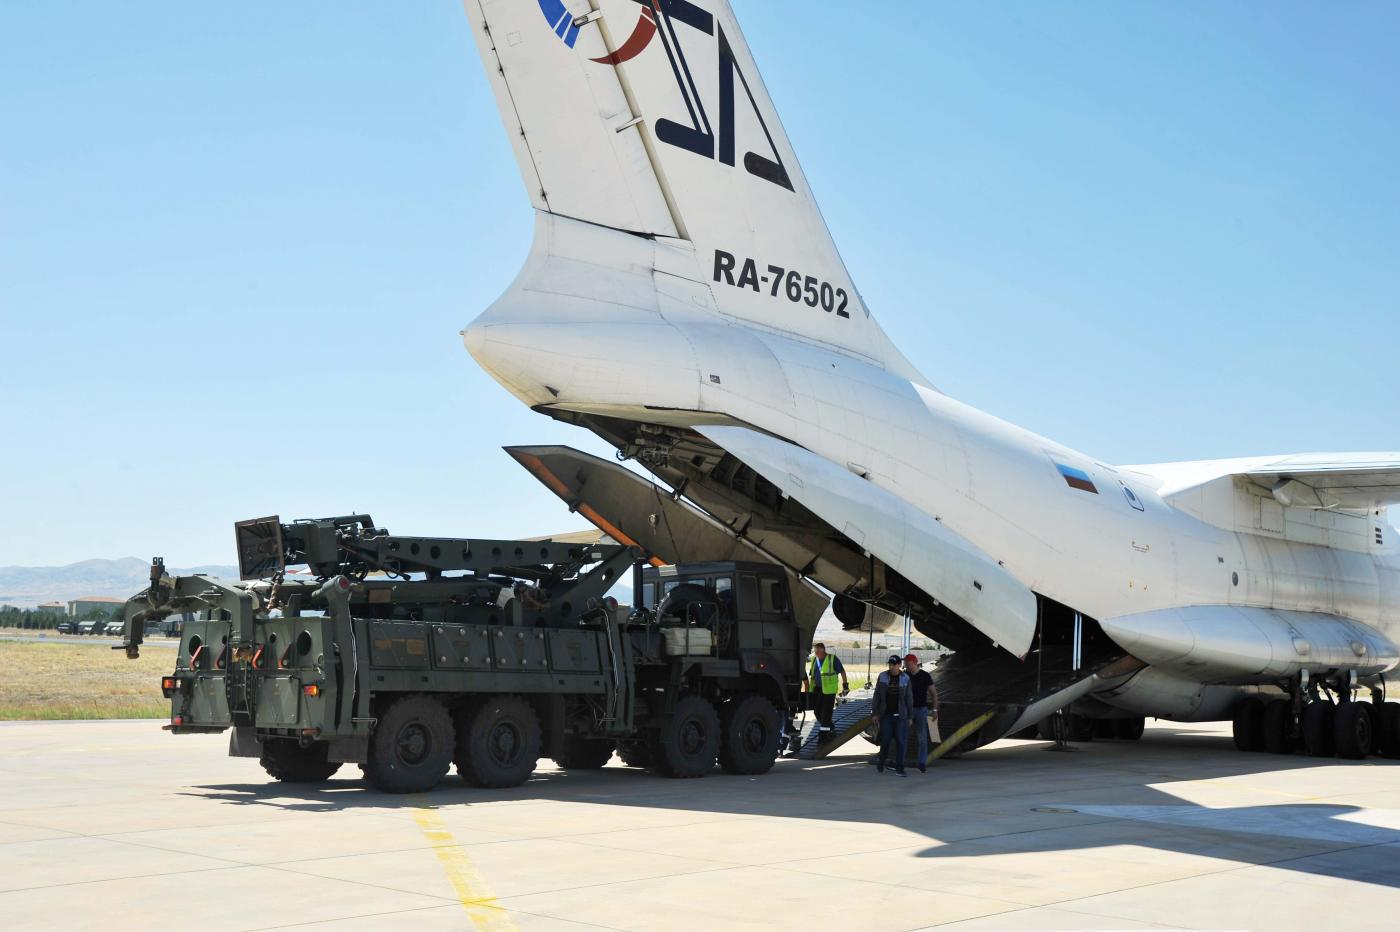 Turkey May Decide Not To Activate S-400s